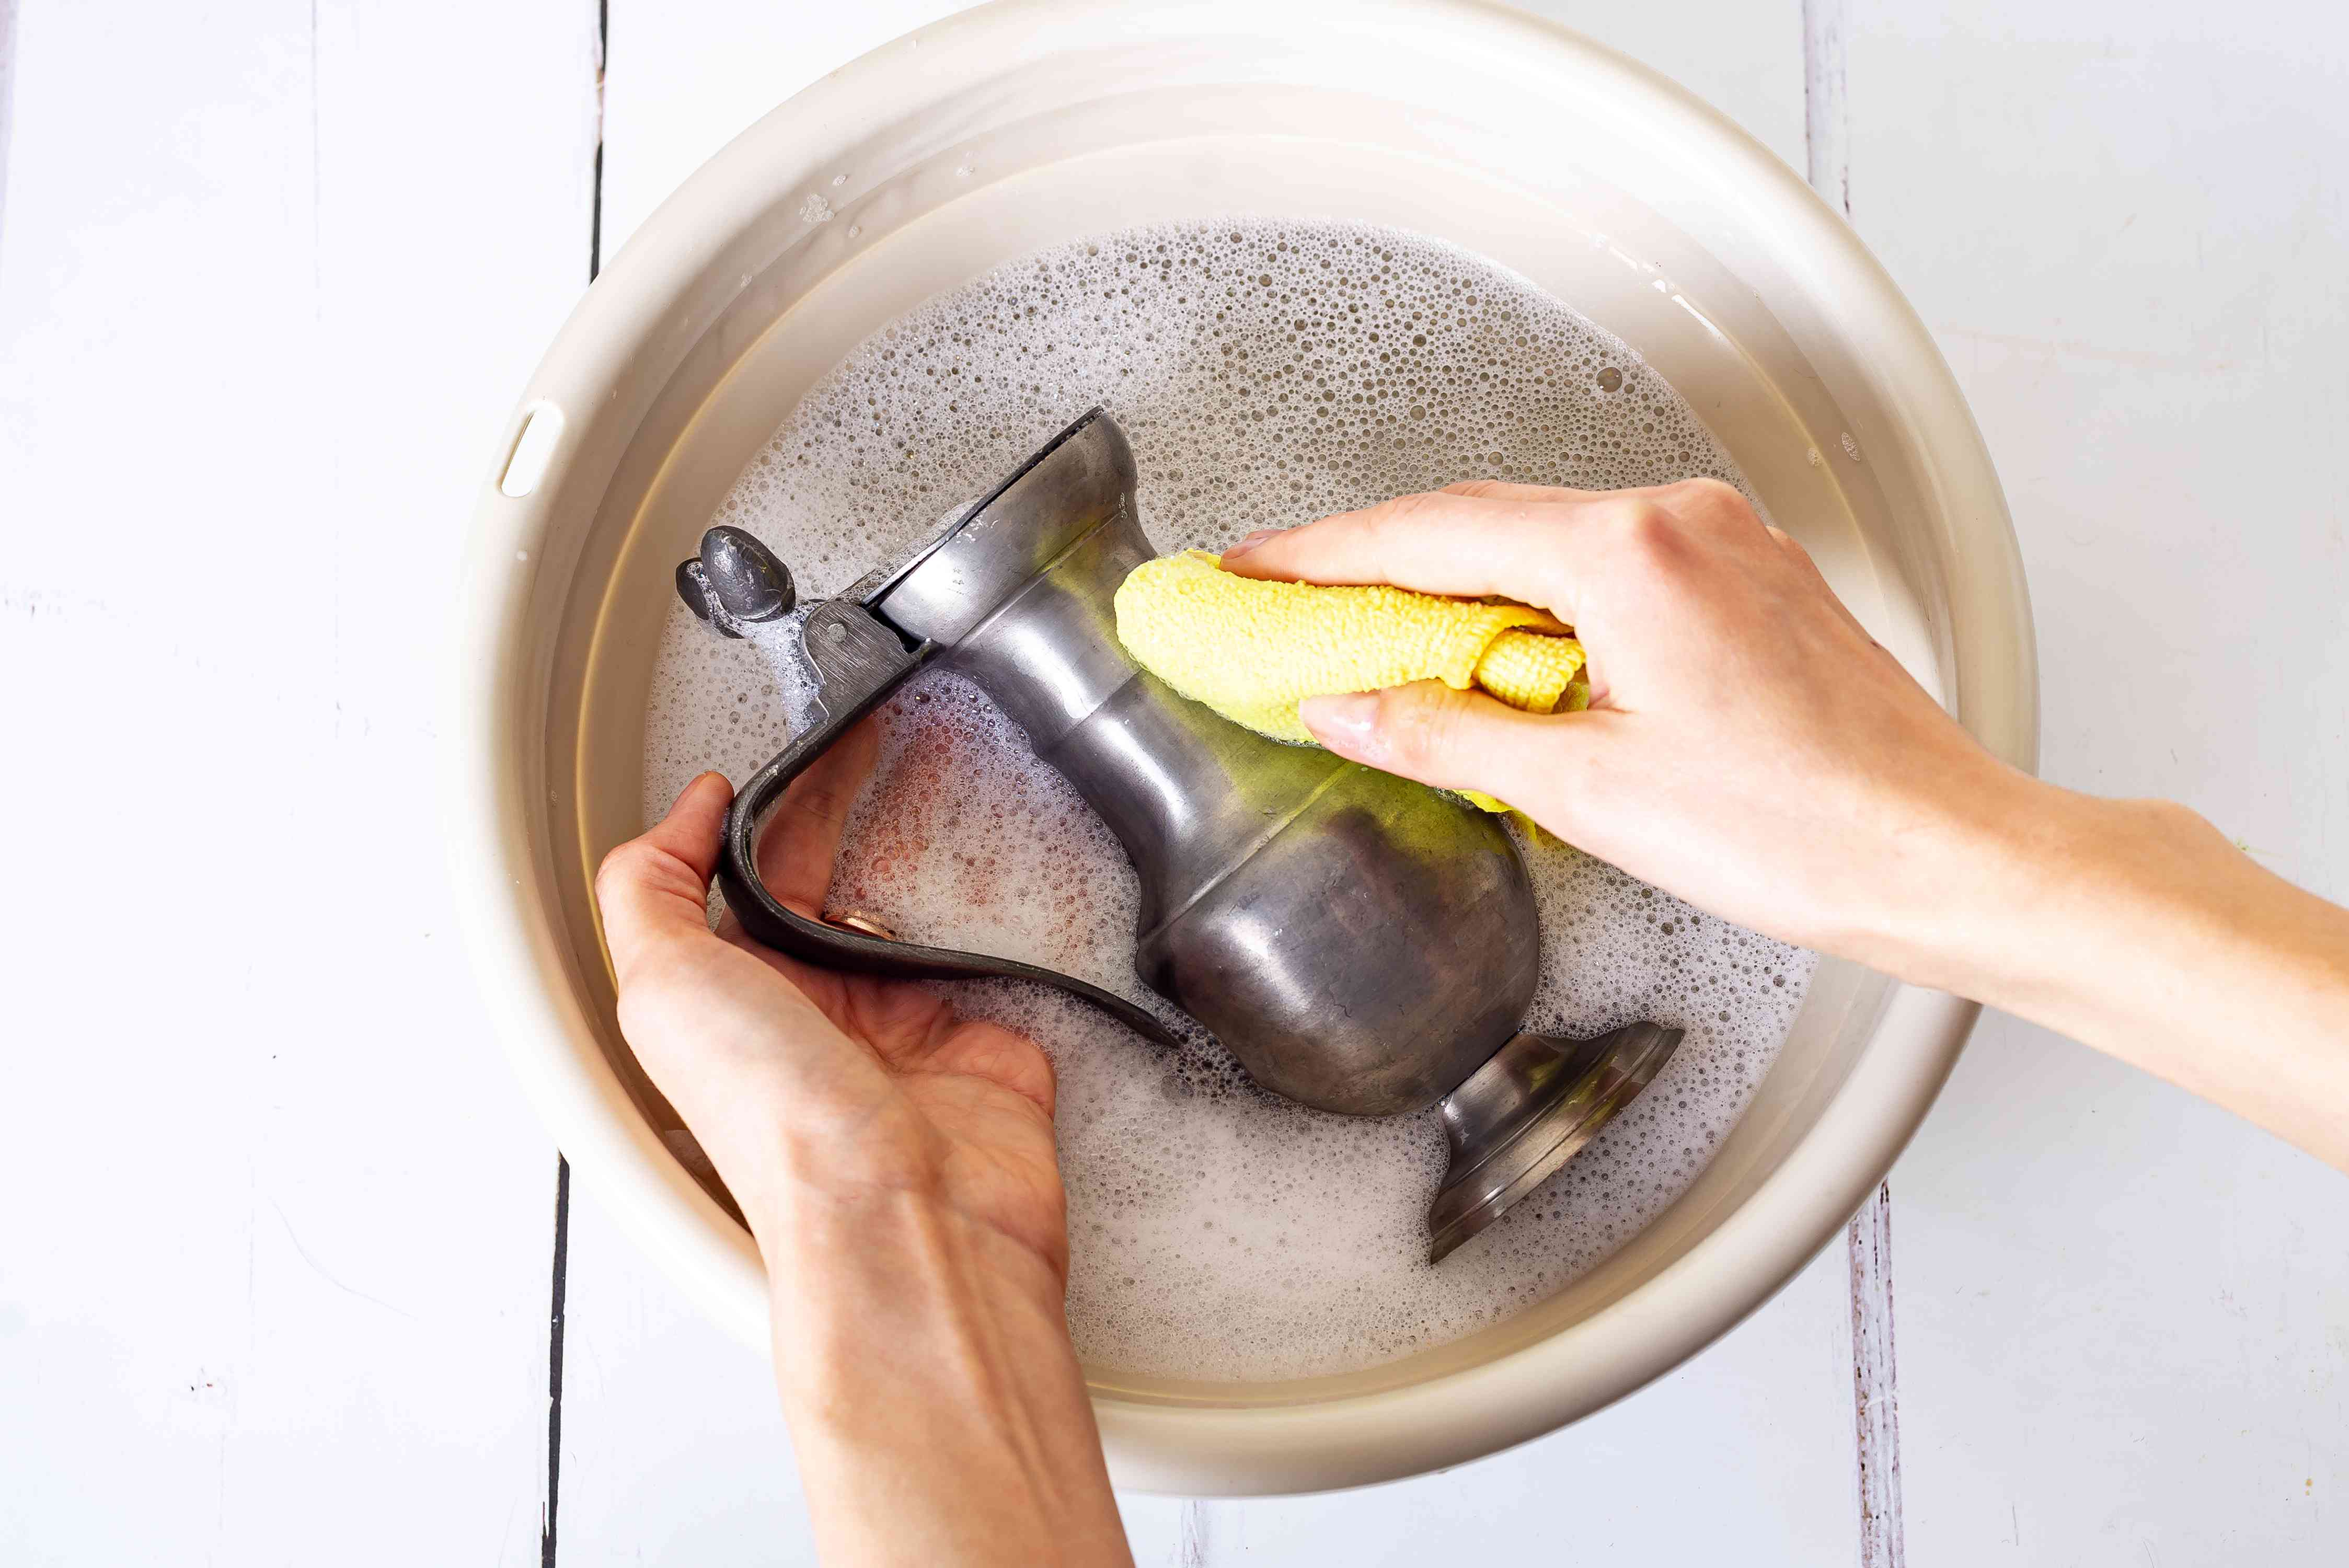 Pewter dispenser washed with yellow cloth in bucket filled with cleaning solution